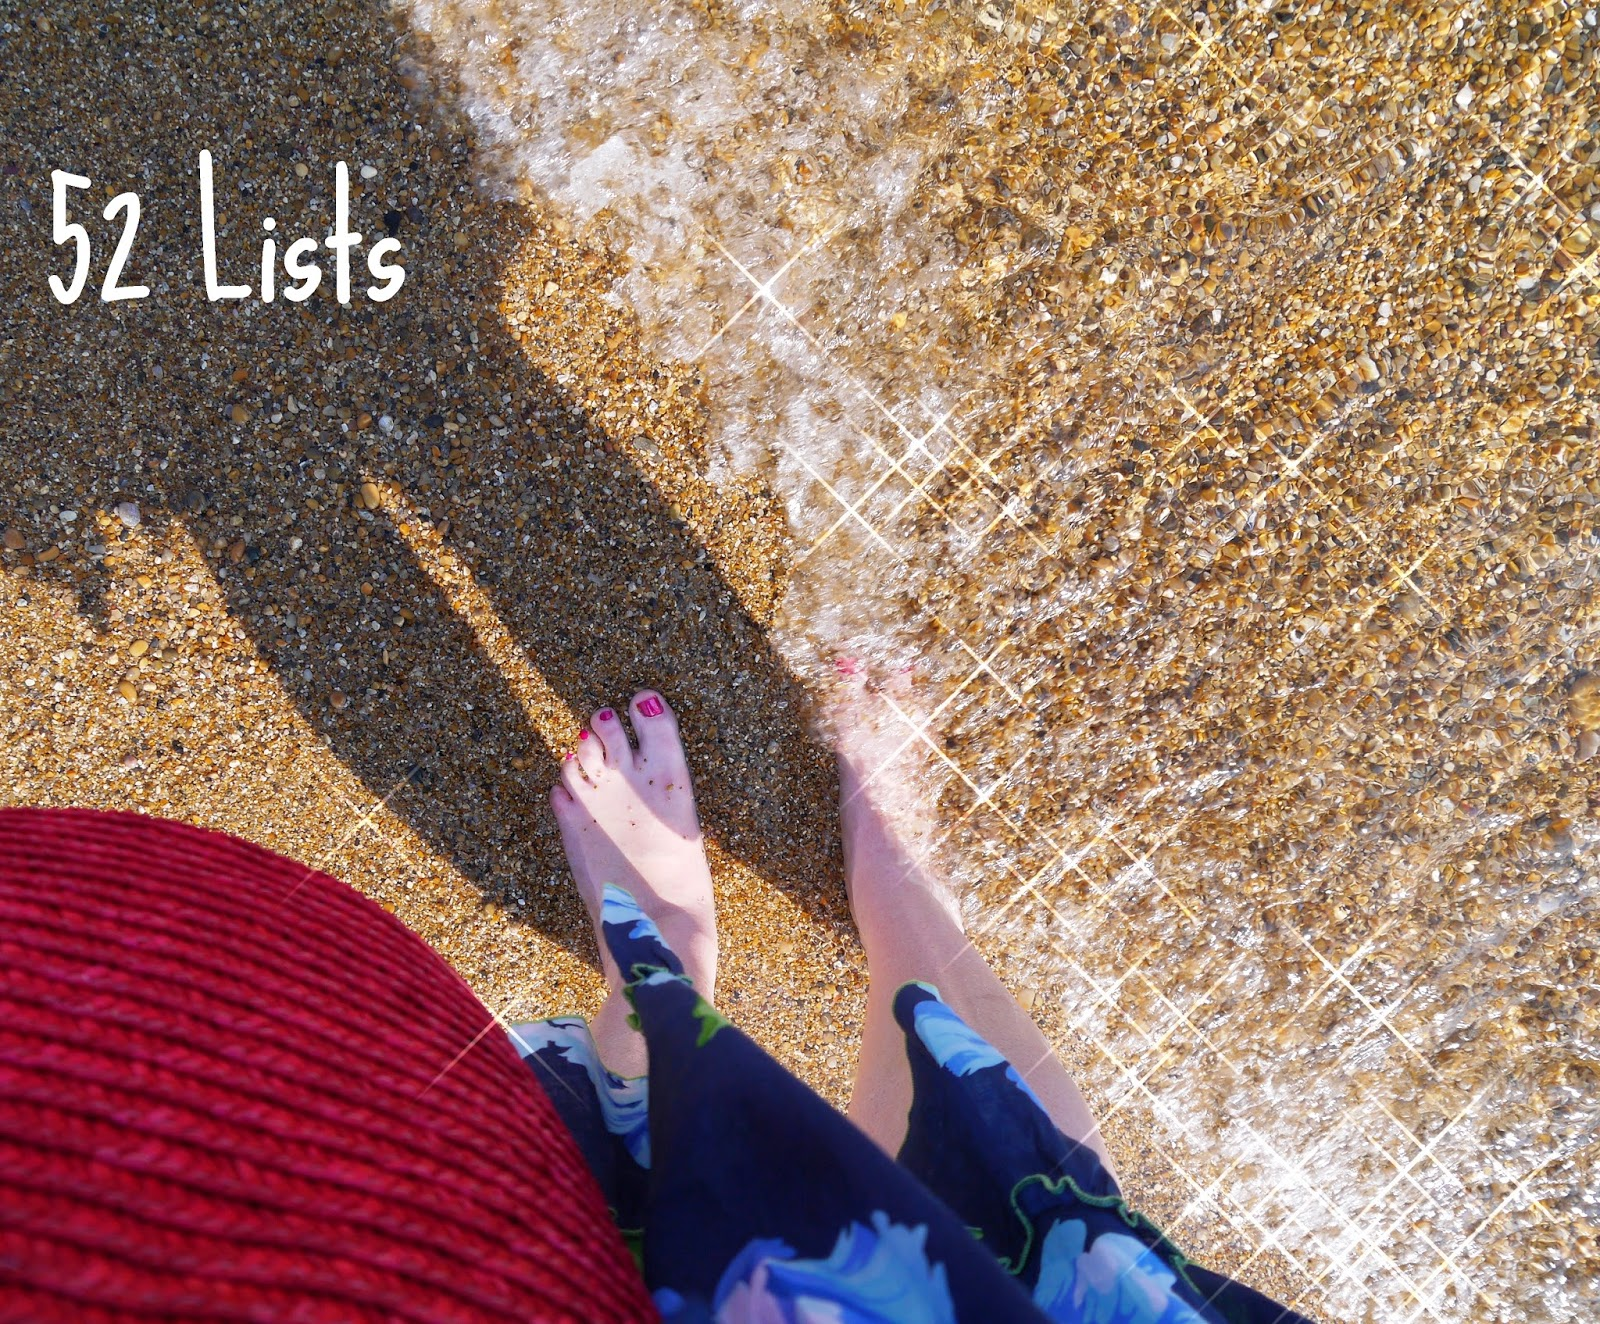 52 Lists - Your Summer To-Do List